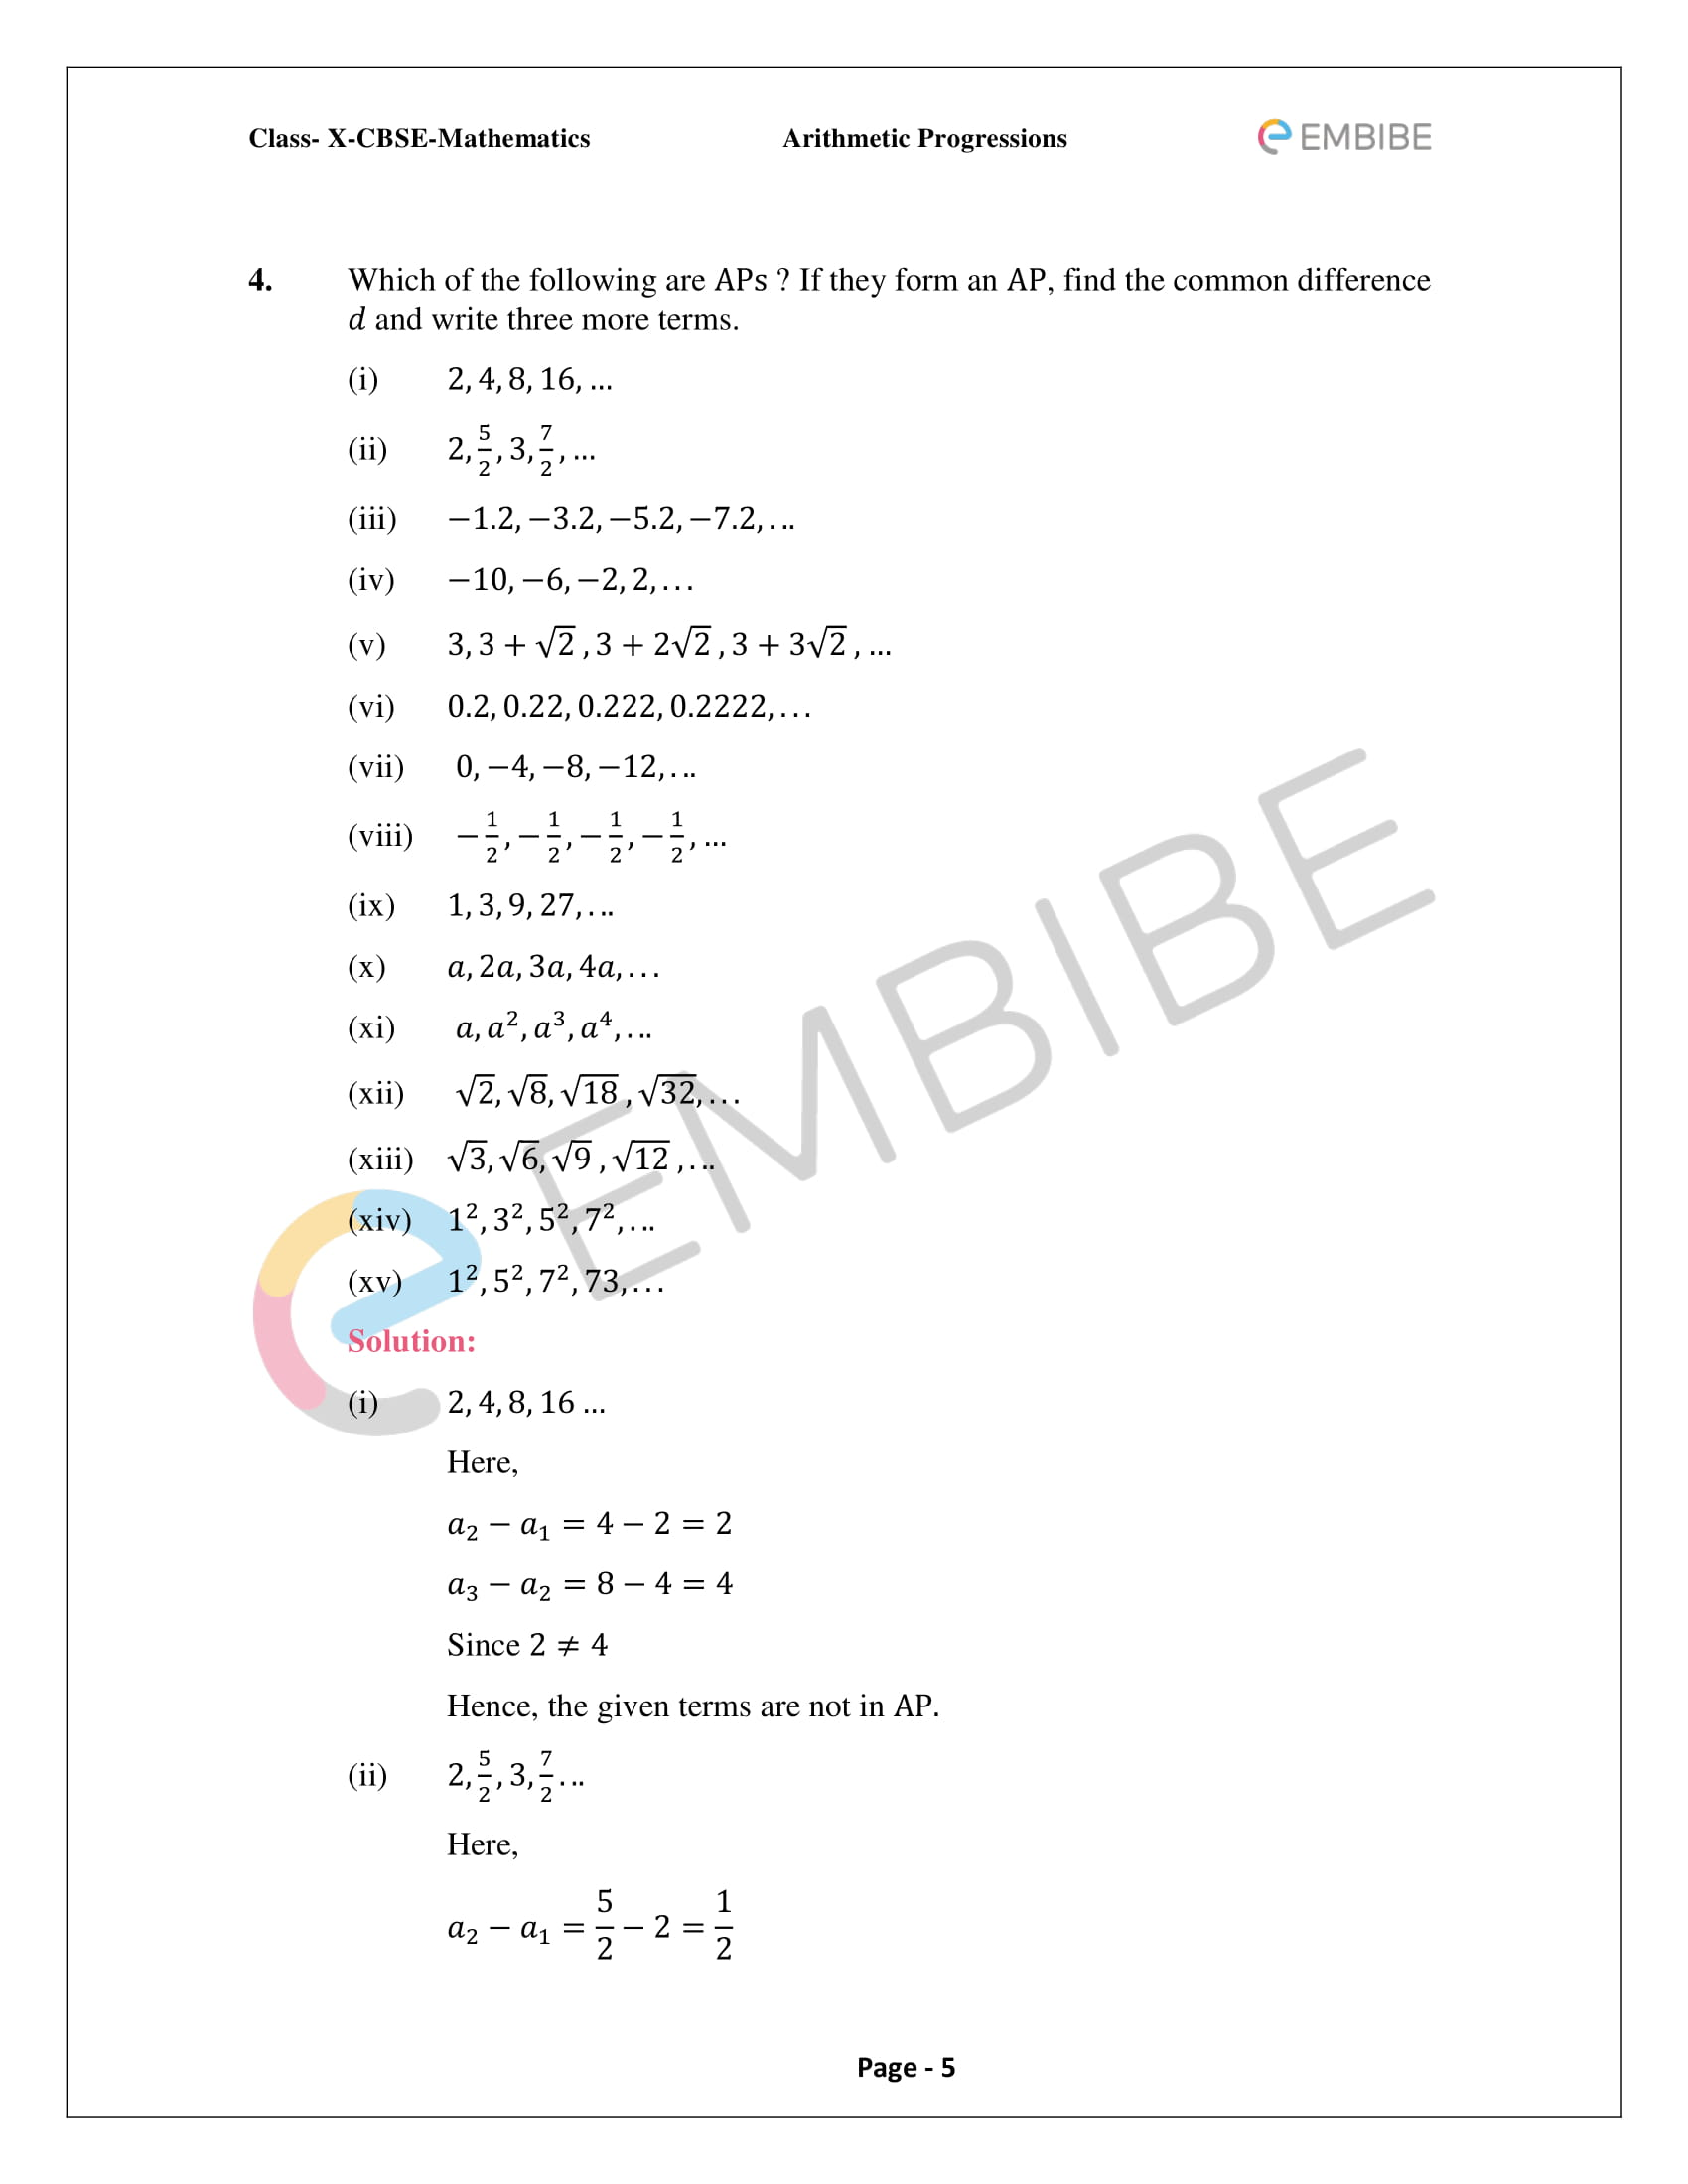 Chapter 5_Arithmetic Progressions-05